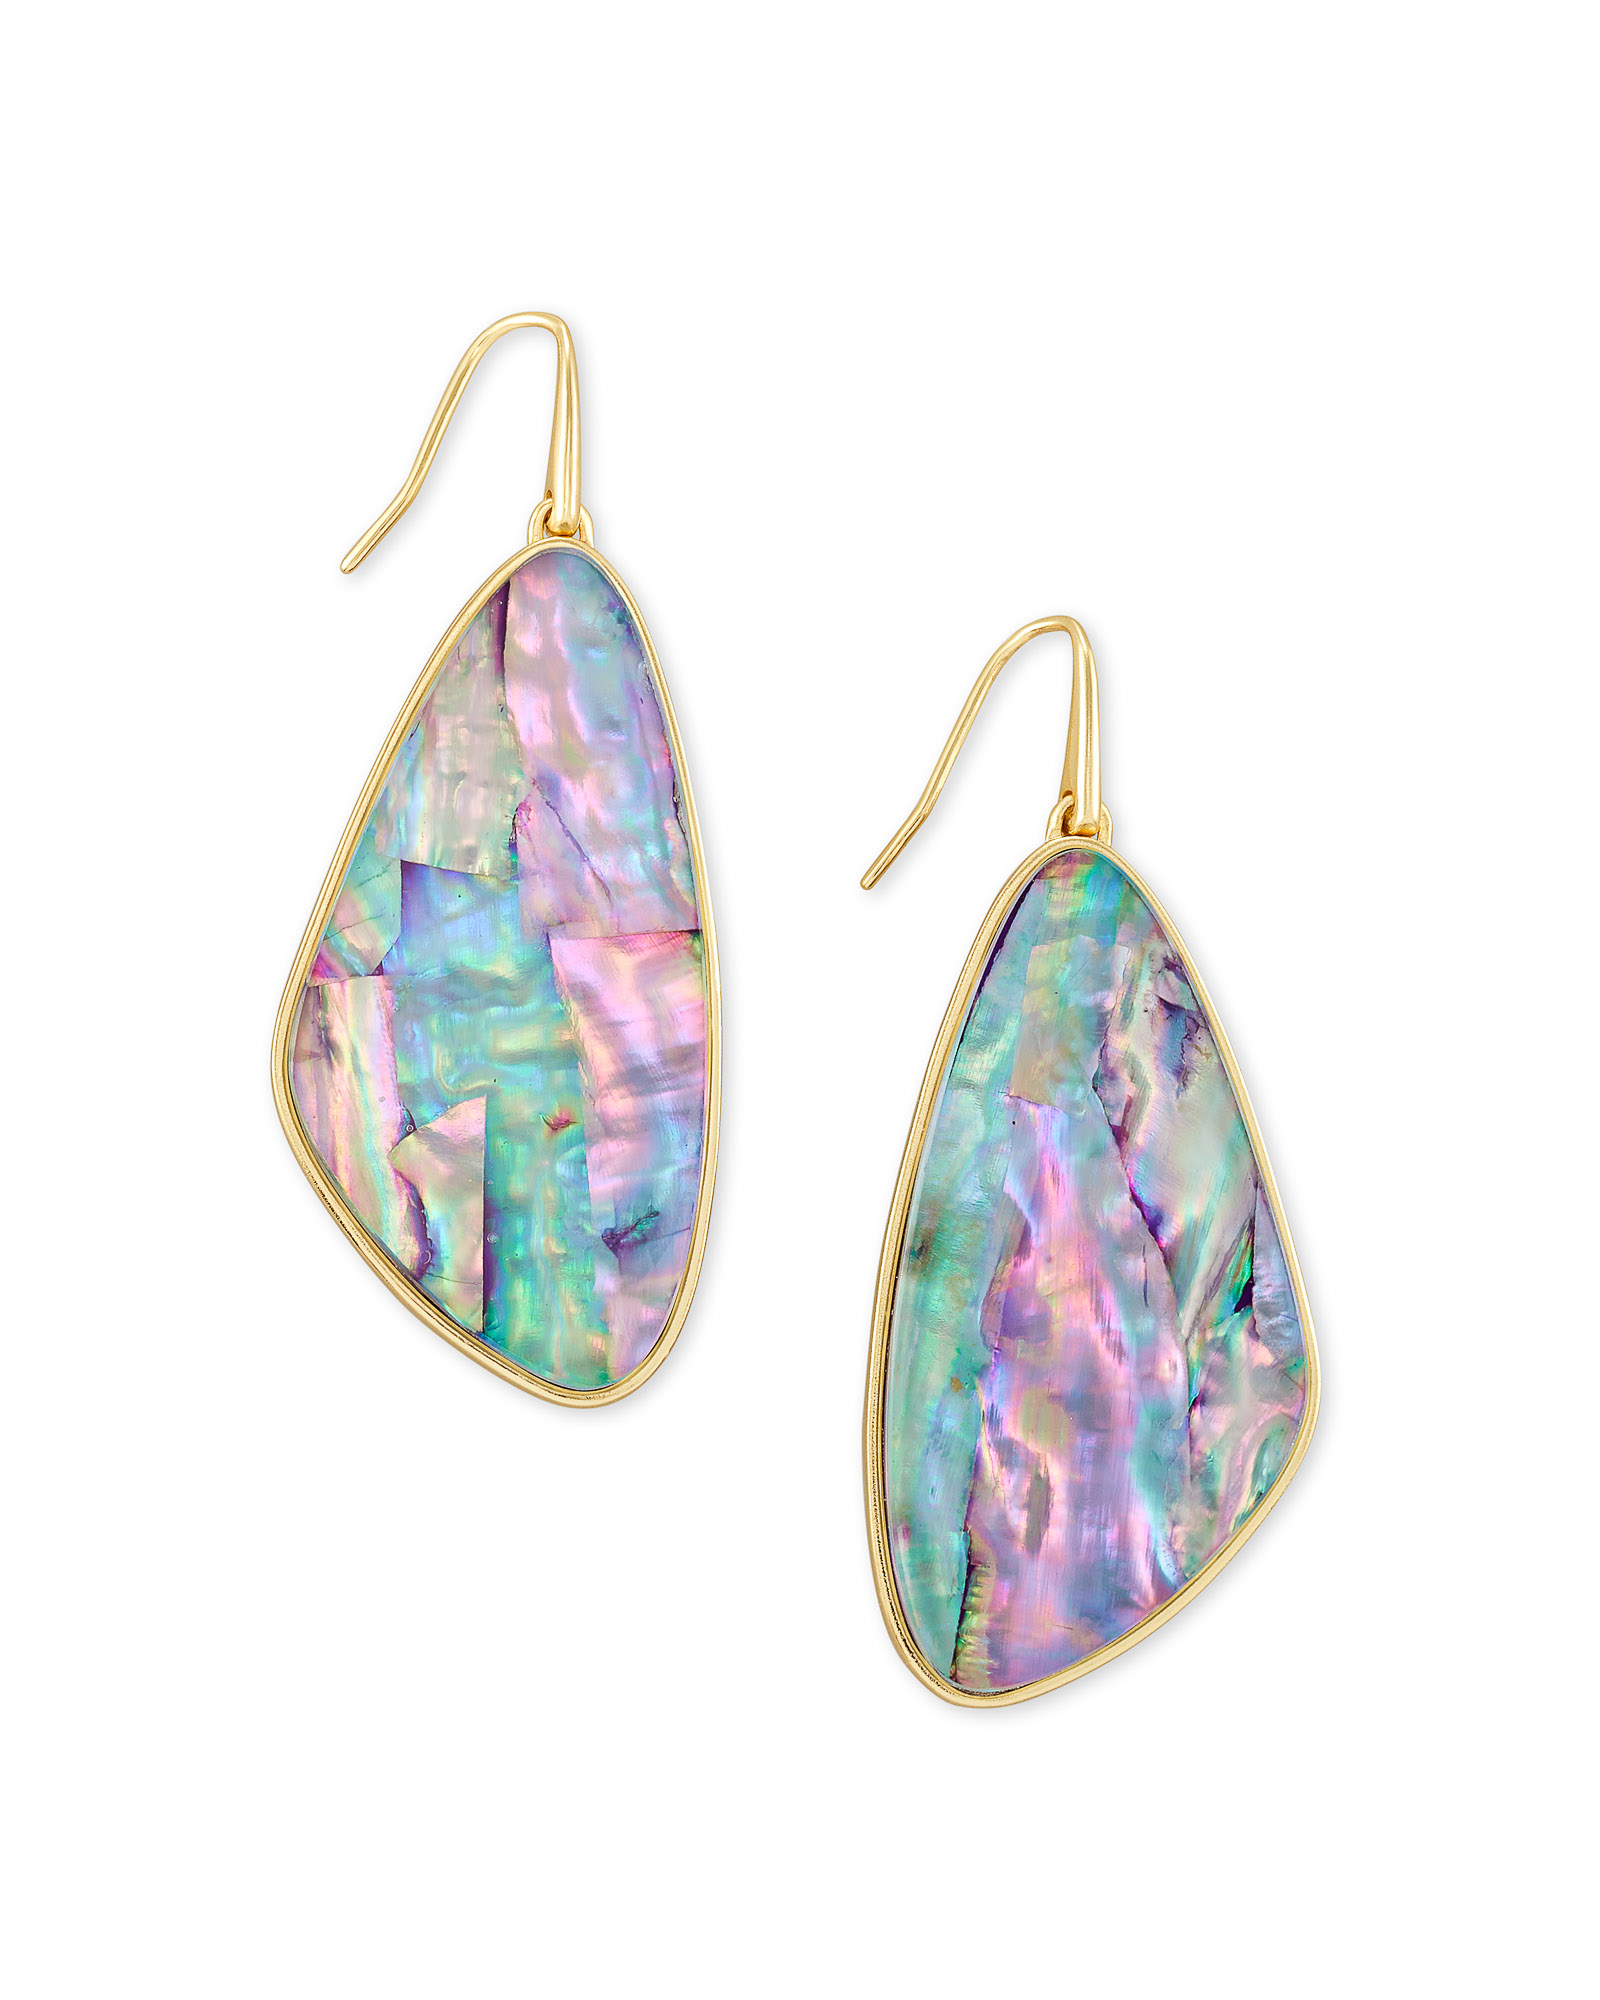 Mckenna Gold Drop Earrings in Lilac Abalone